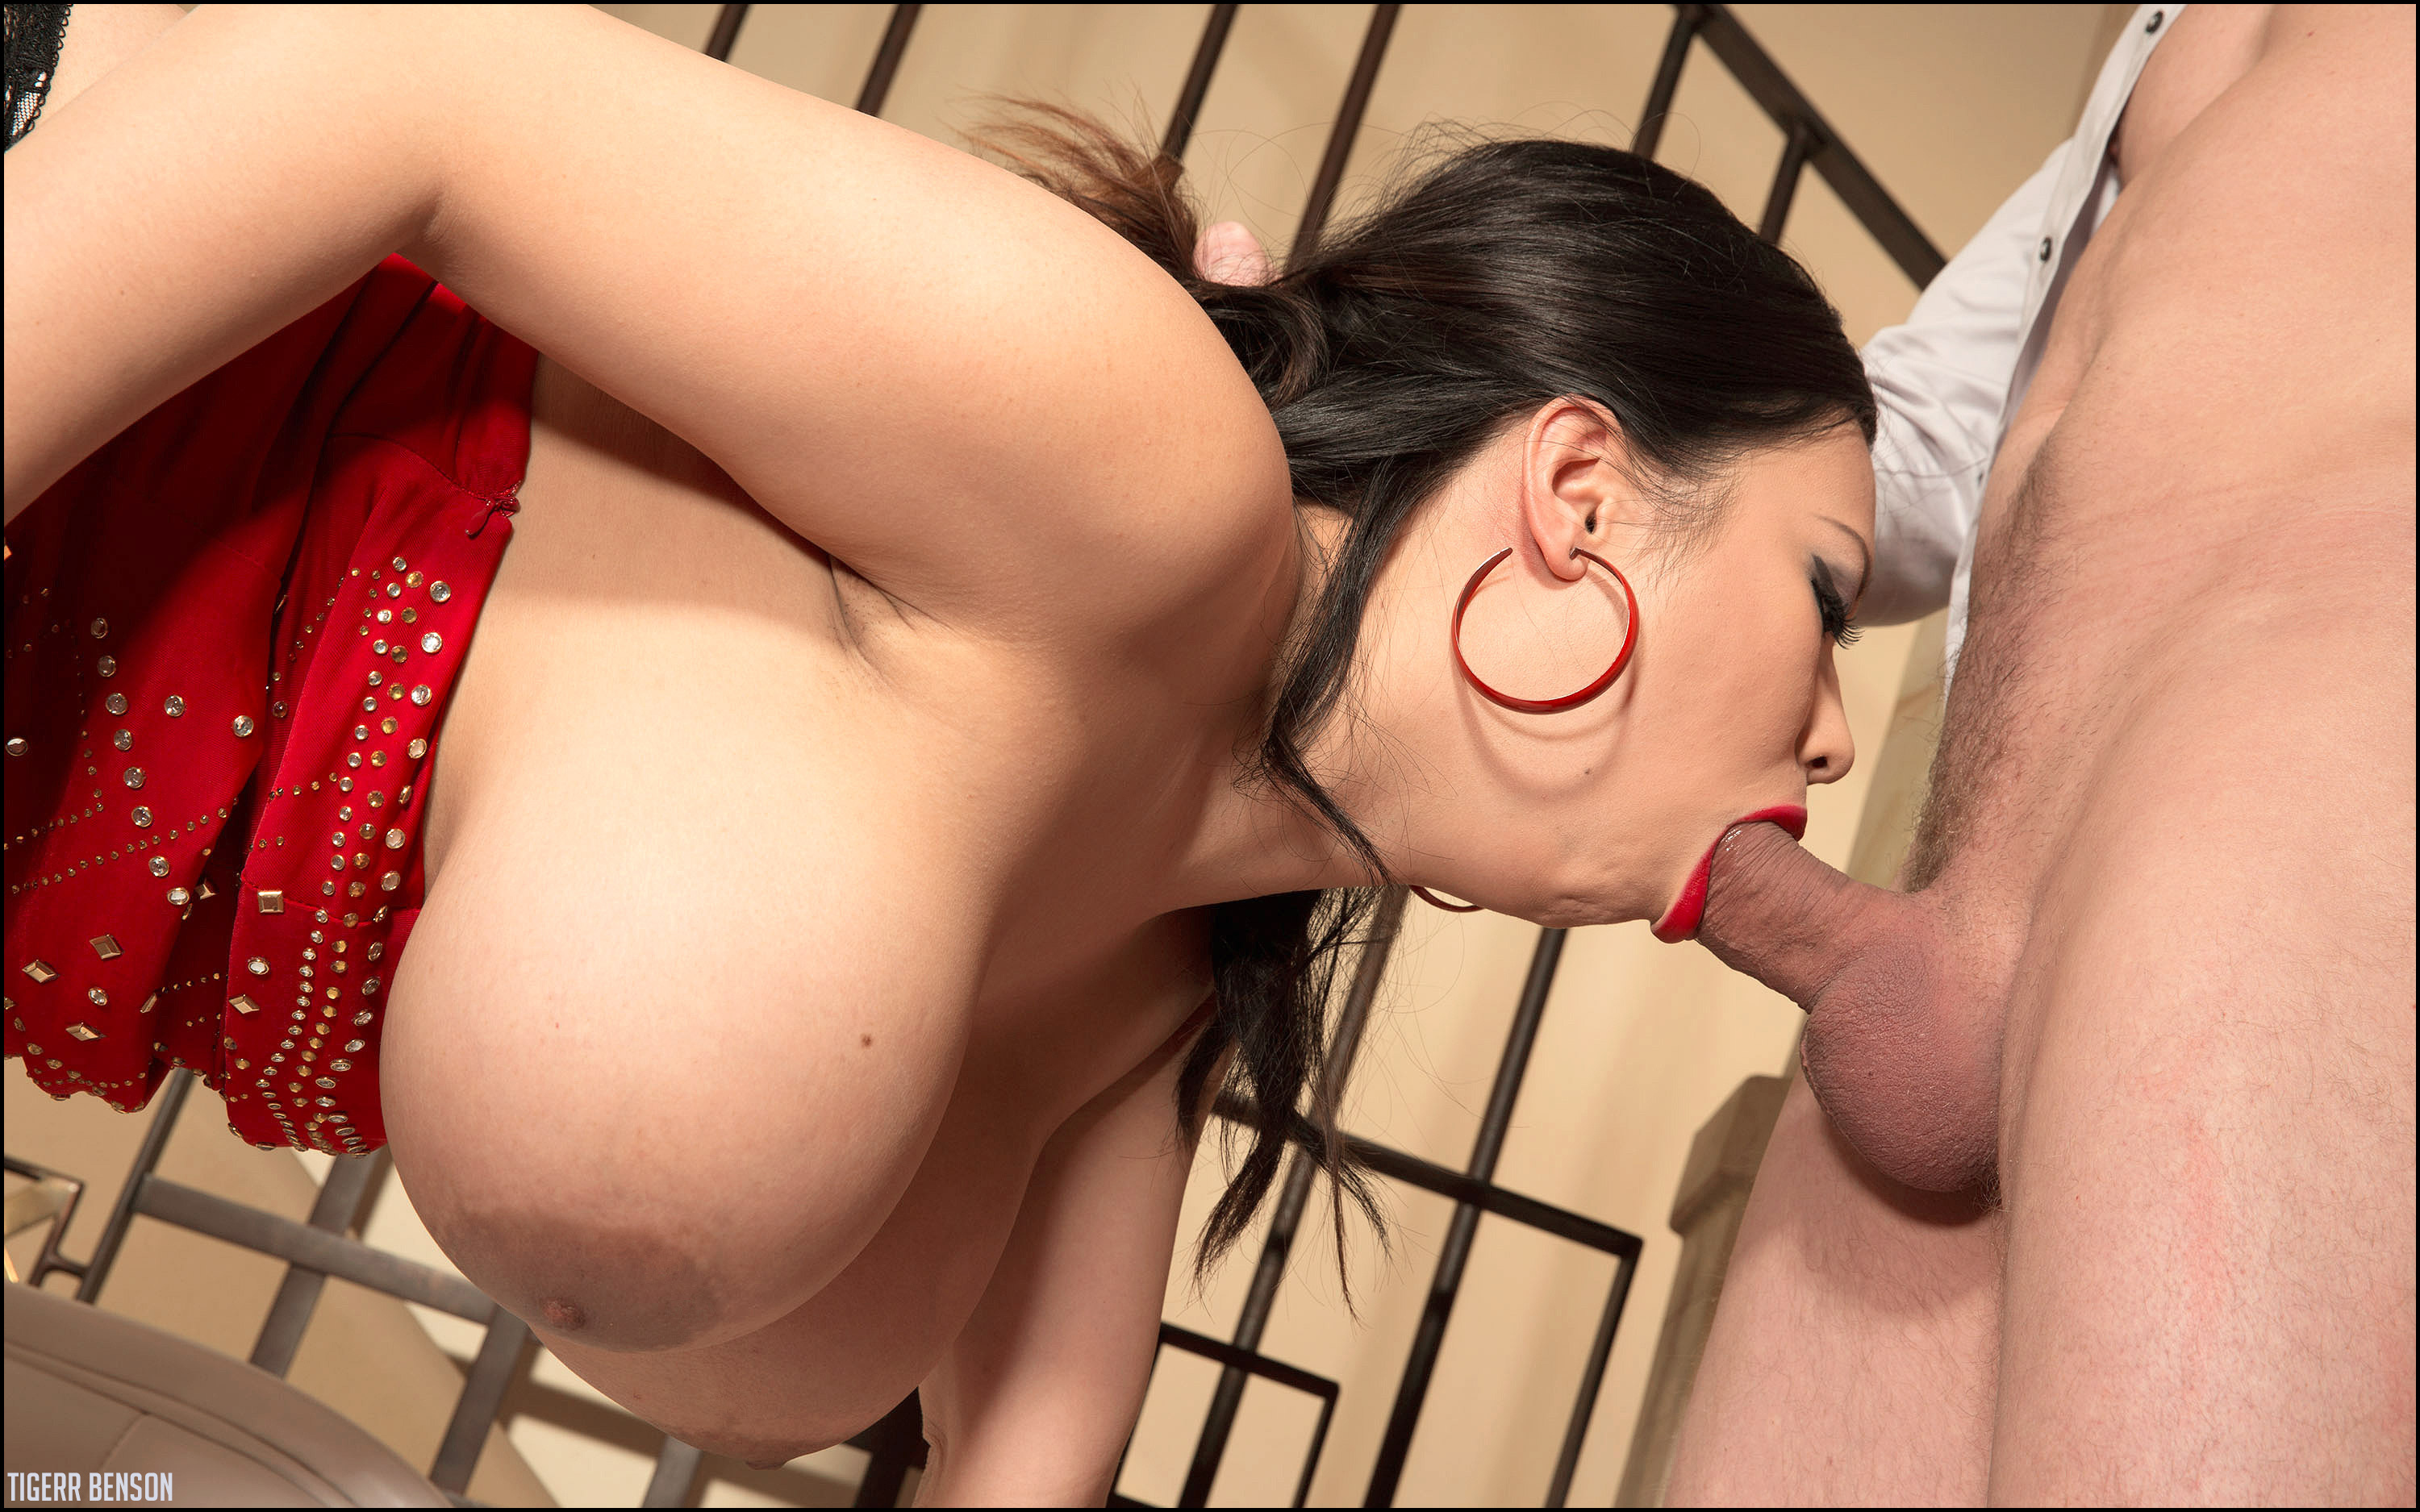 wallpaper tigerr benson blowjob big tits breasts ass